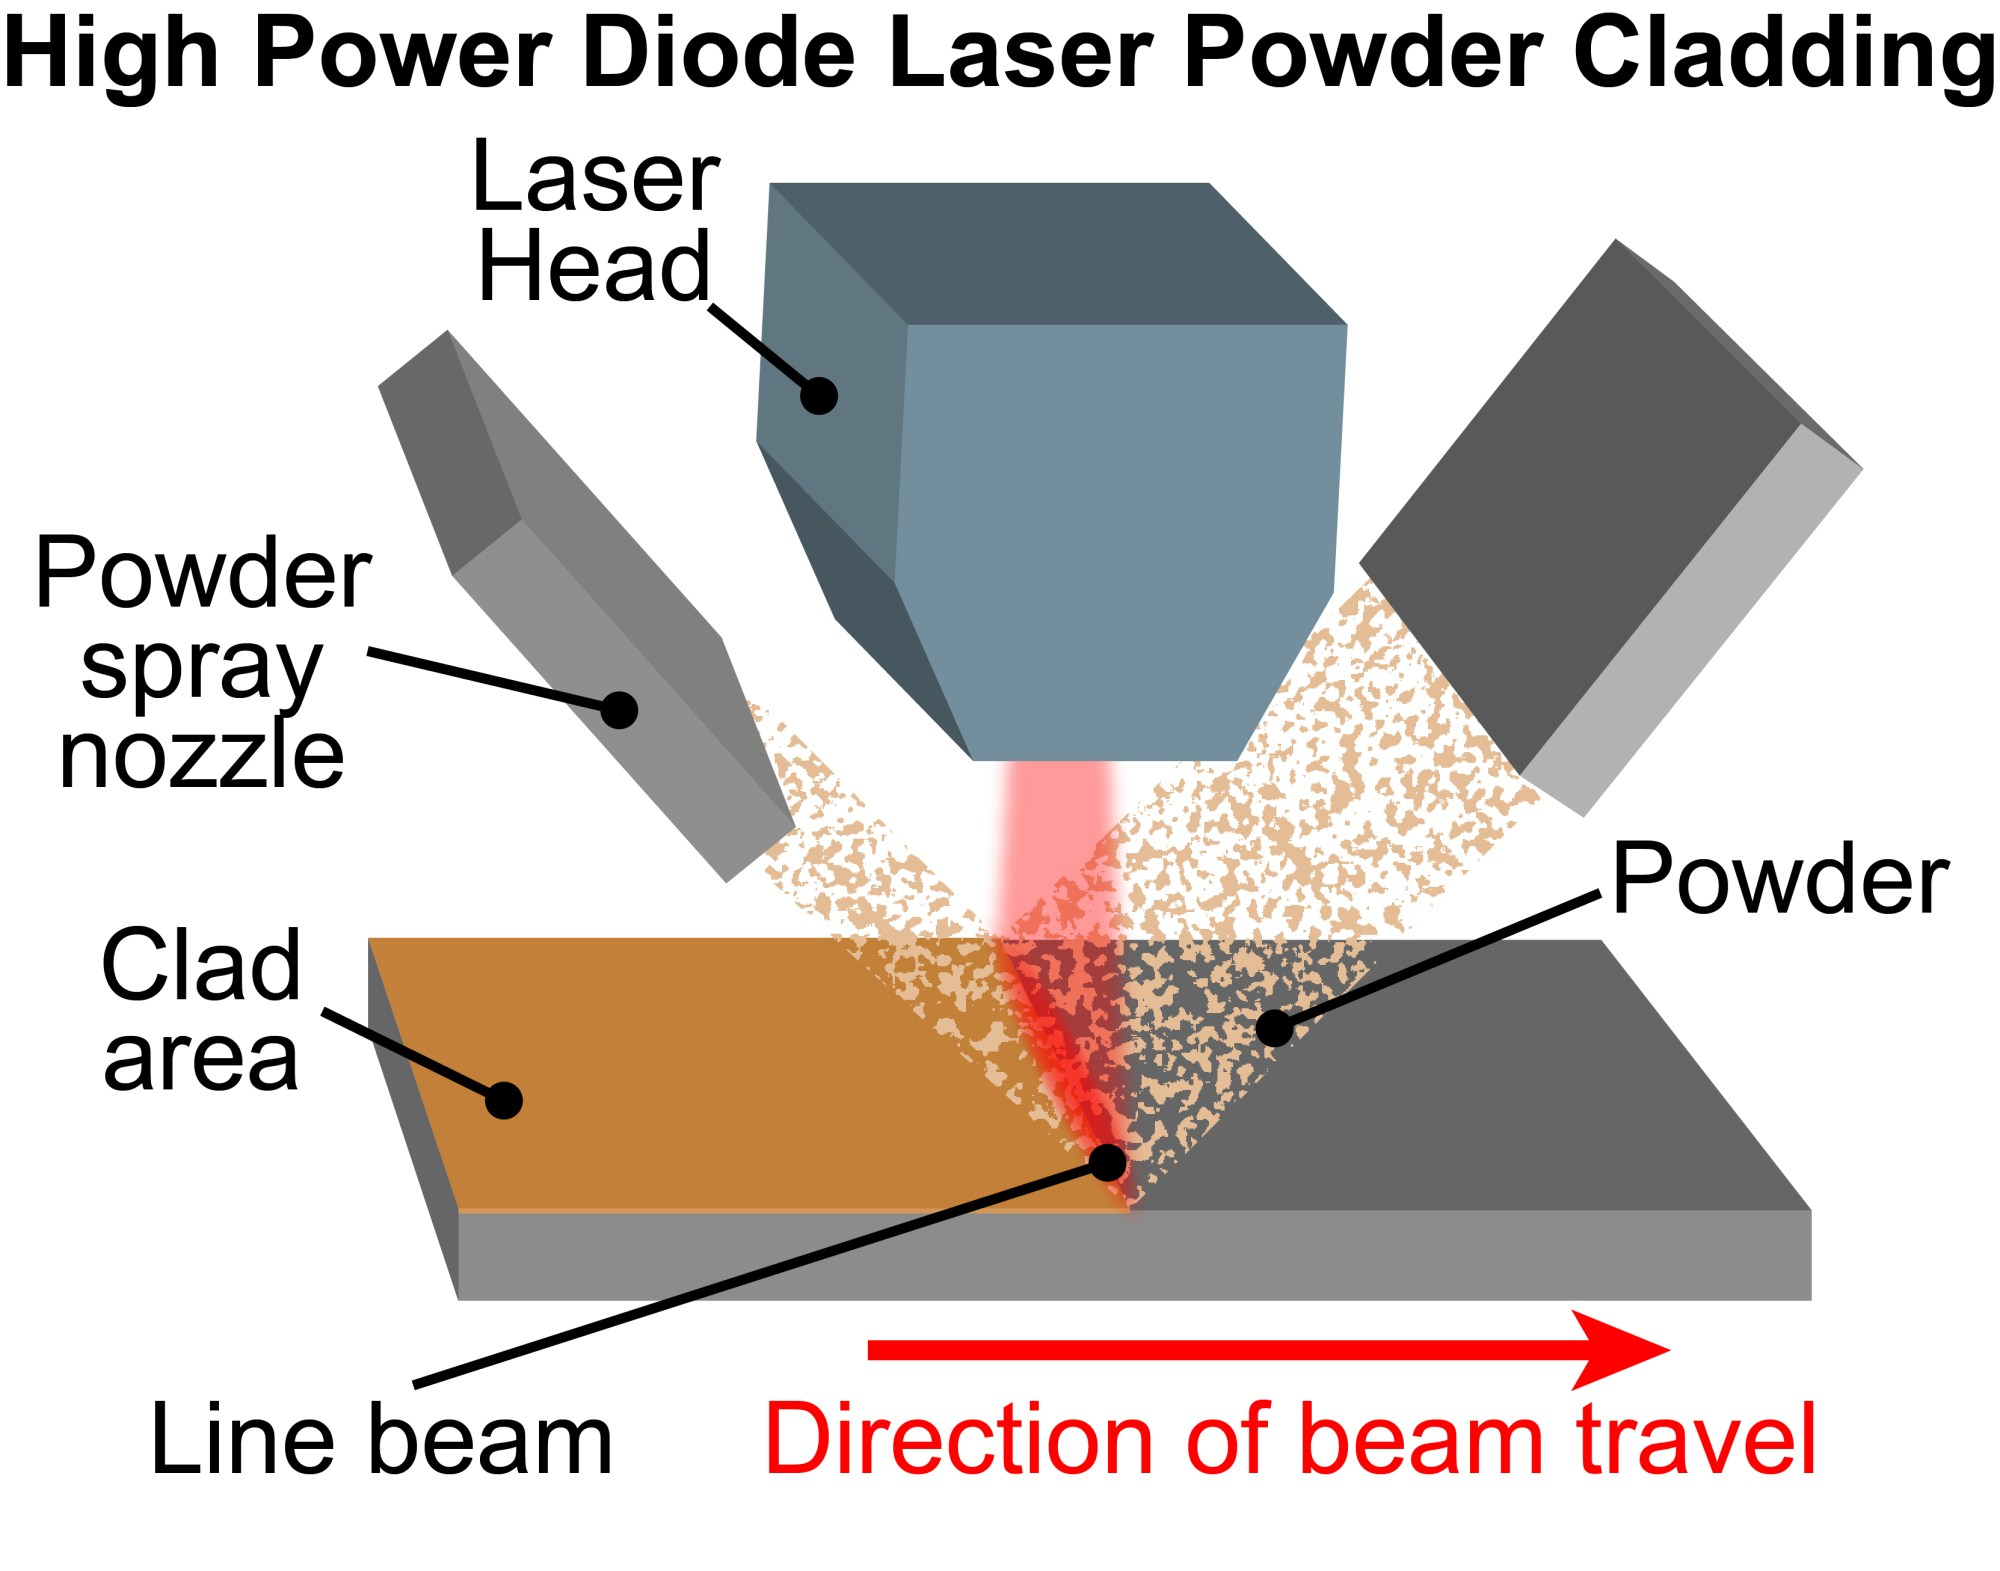 hight resolution of typical processing geometry for high power diode laser powder cladding either the part or the beam can be moved depending upon practical considerations